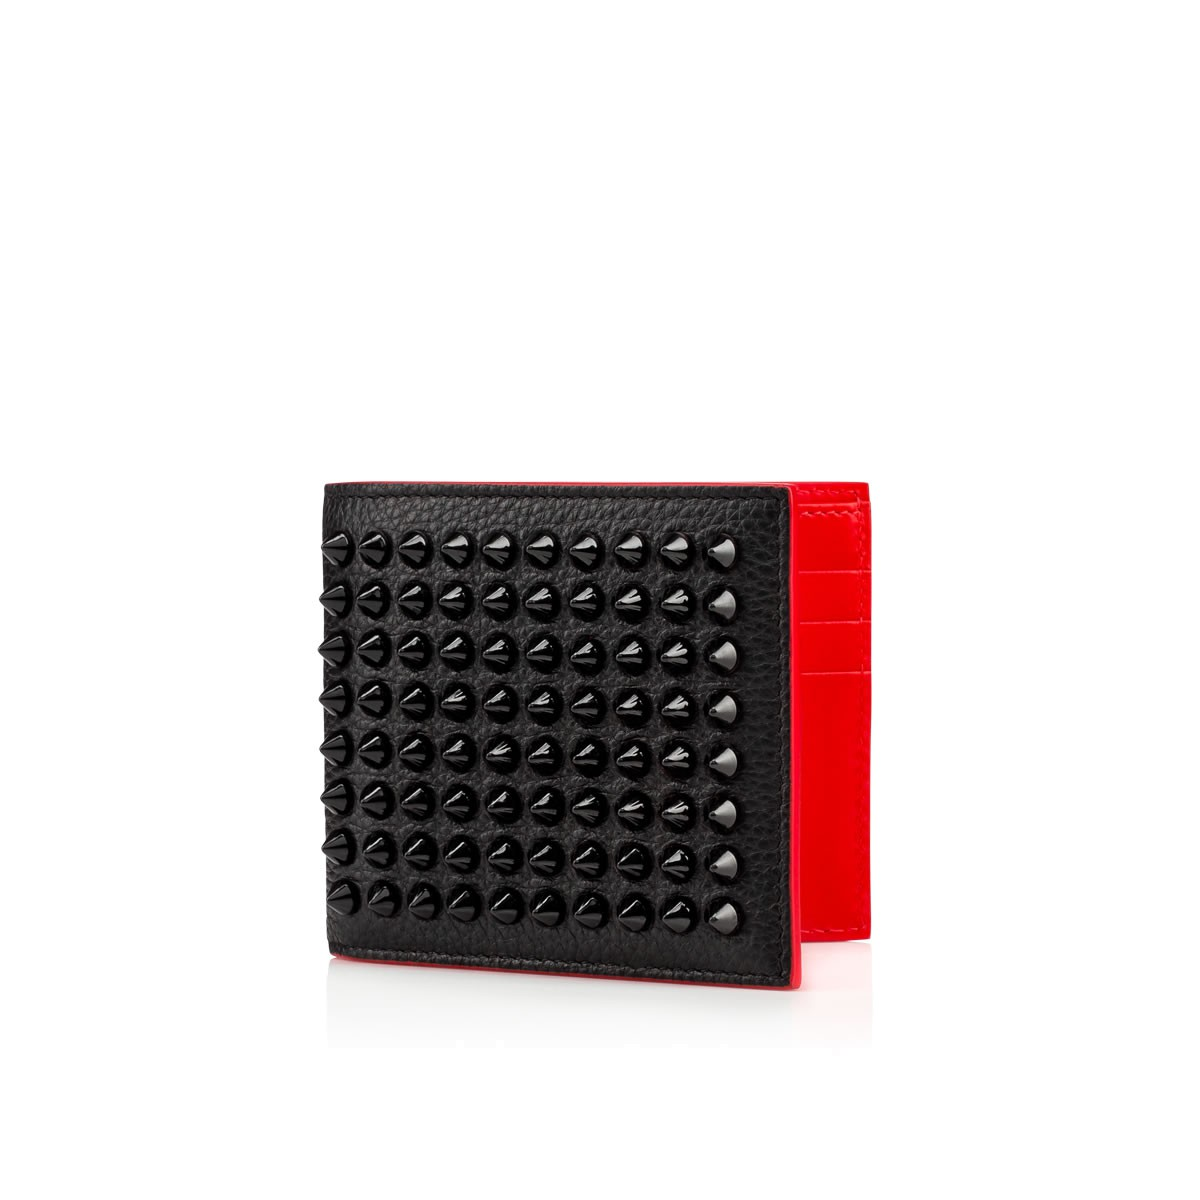 Kaspero Money Clip Wallet Black Calfskin Accessories Christian Louboutin